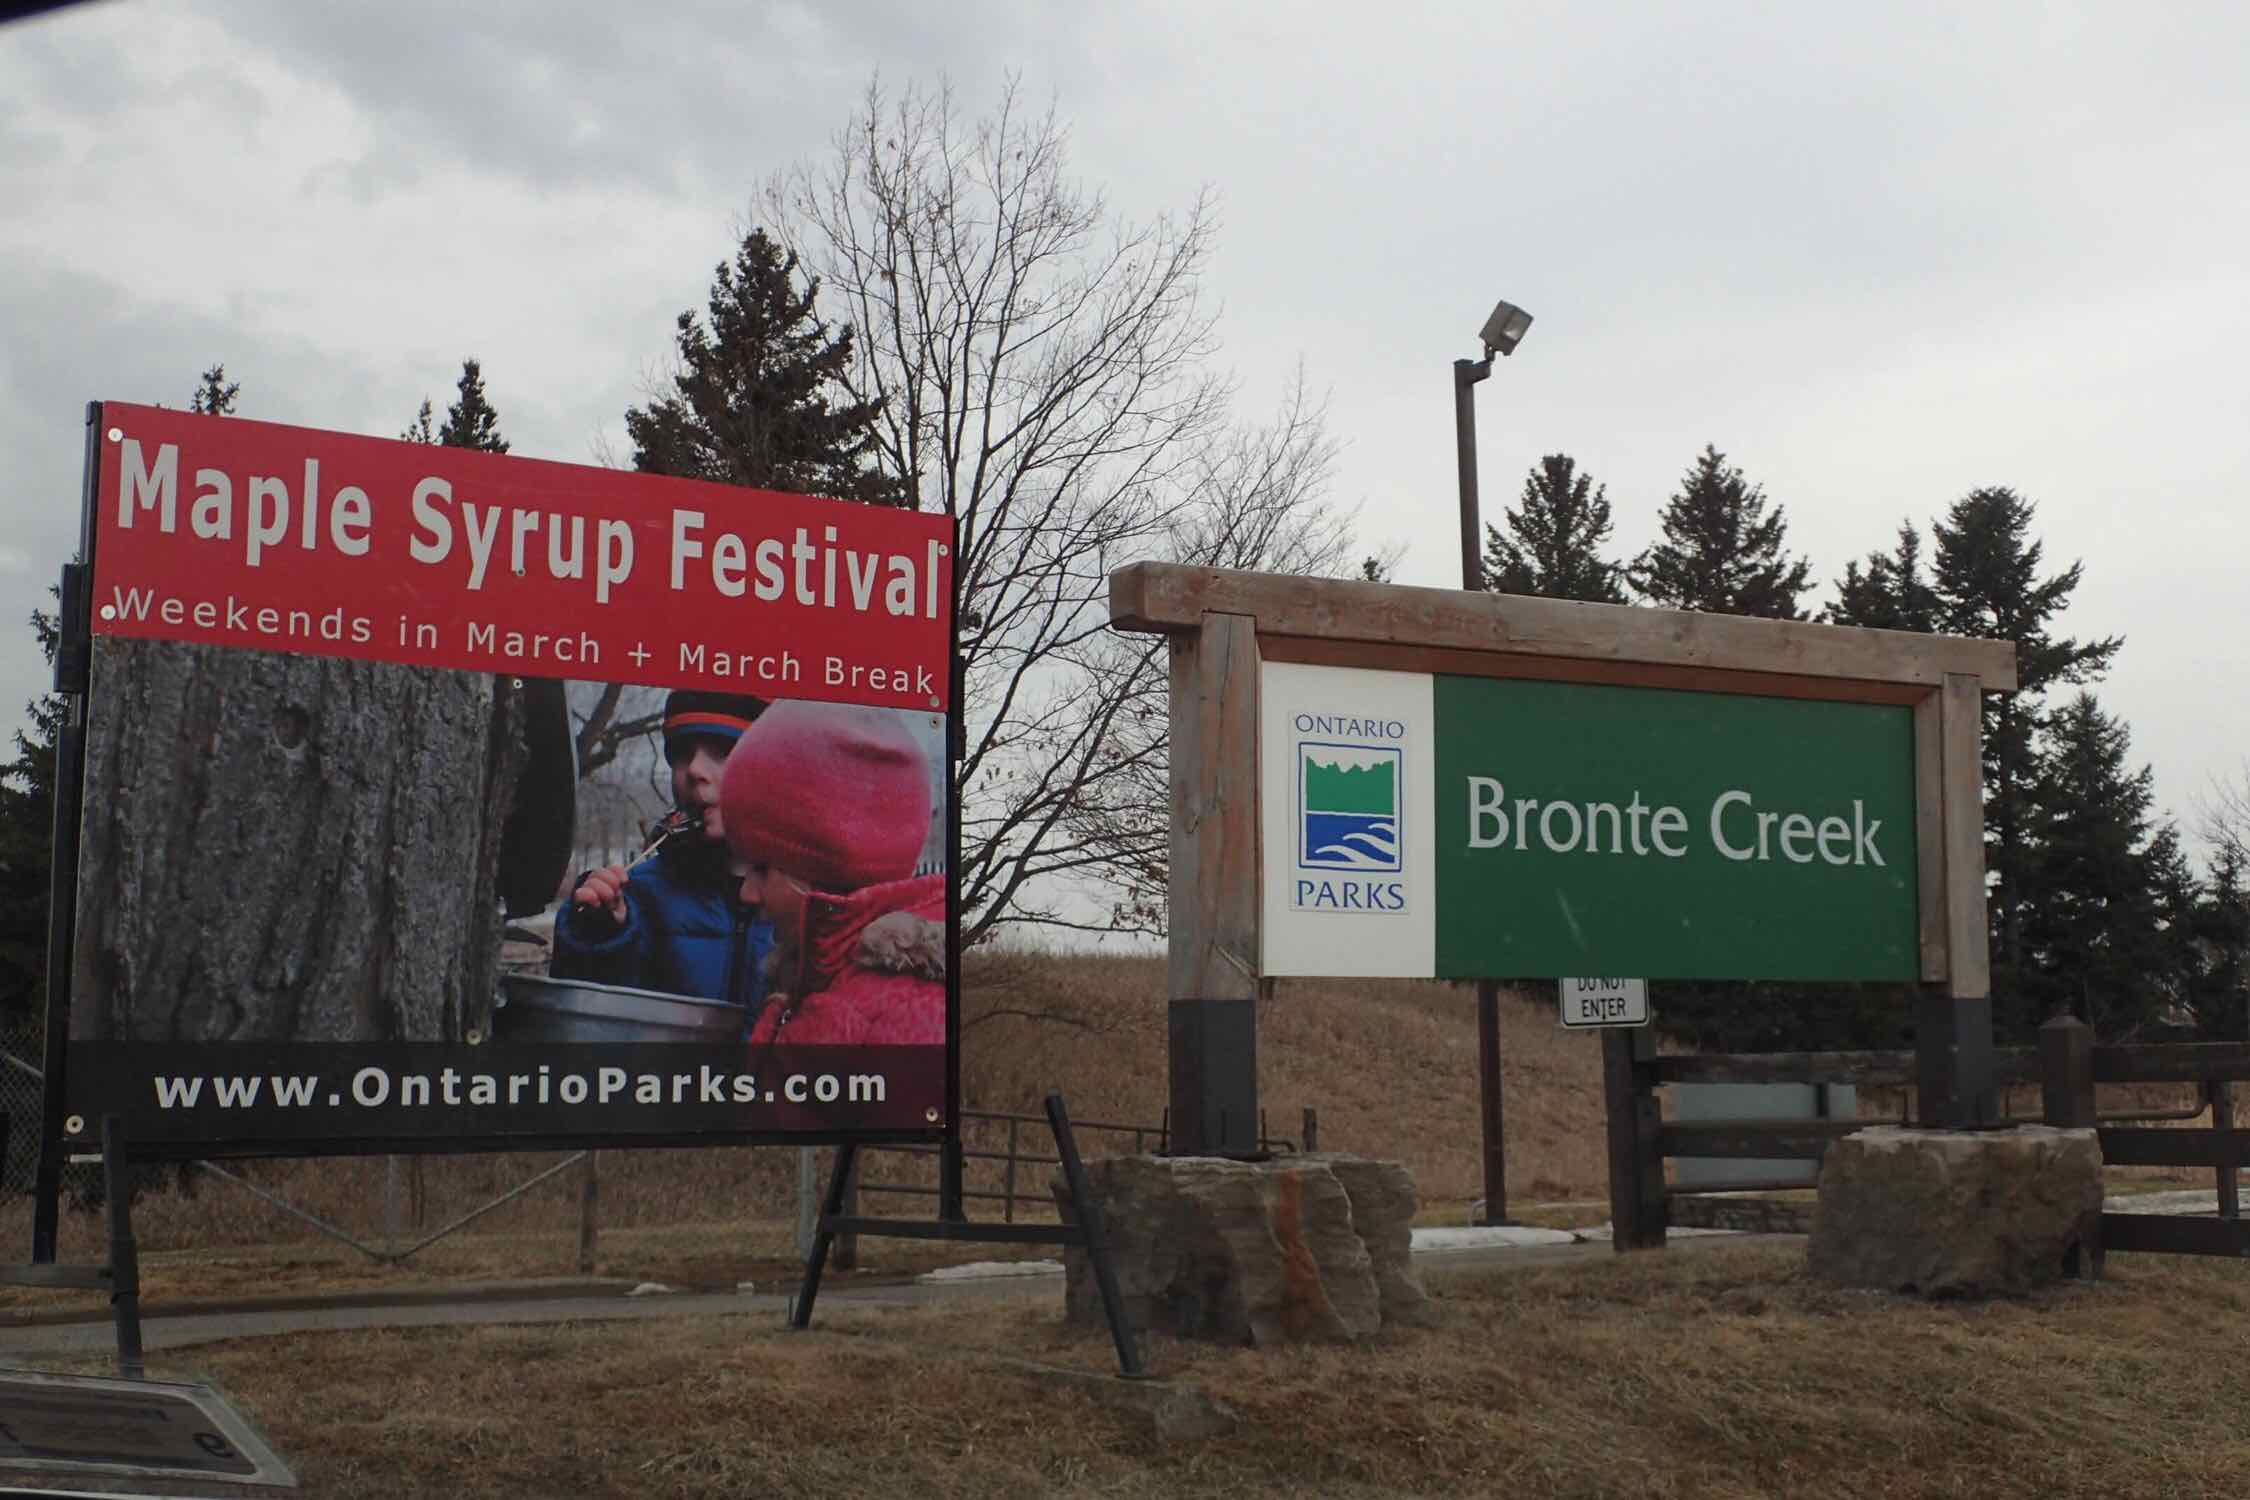 Maple Syrup Festival at Bronte Creek Provincial Park